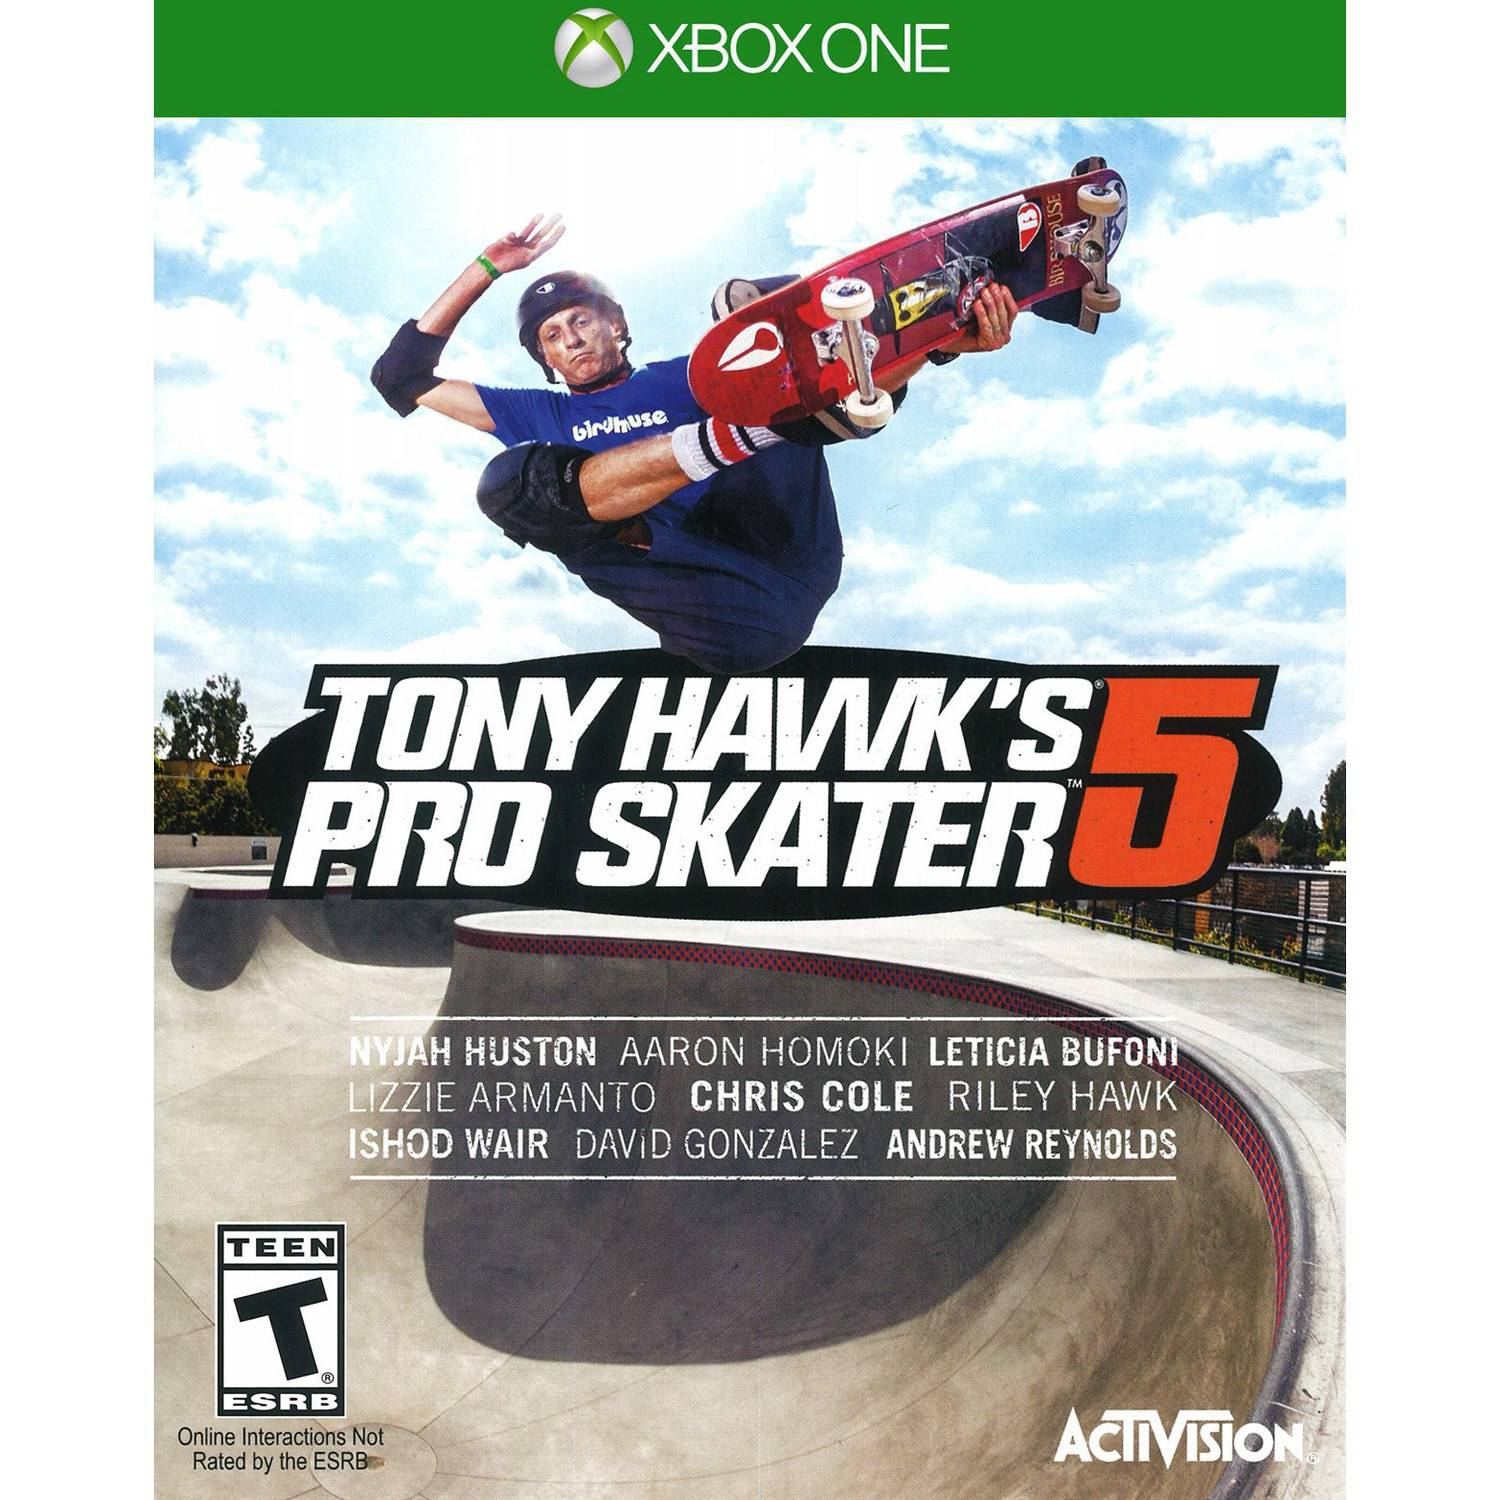 Tony Hawk Pro Skater 5 (Xbox One) - Pre-Owned